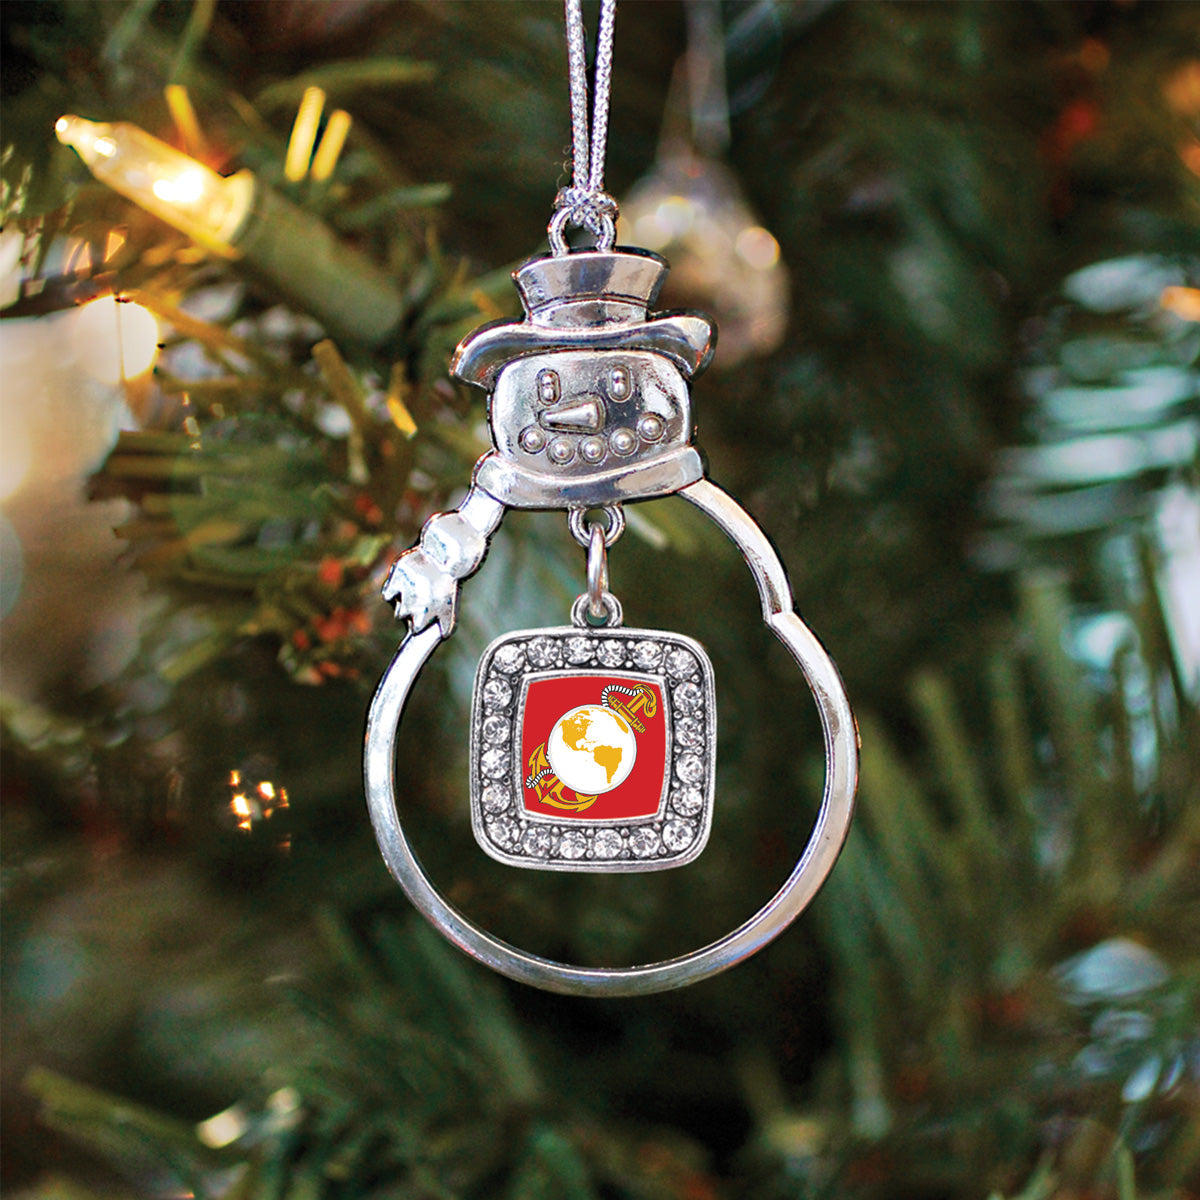 Marine Symbol Square Charm Christmas / Holiday Ornament